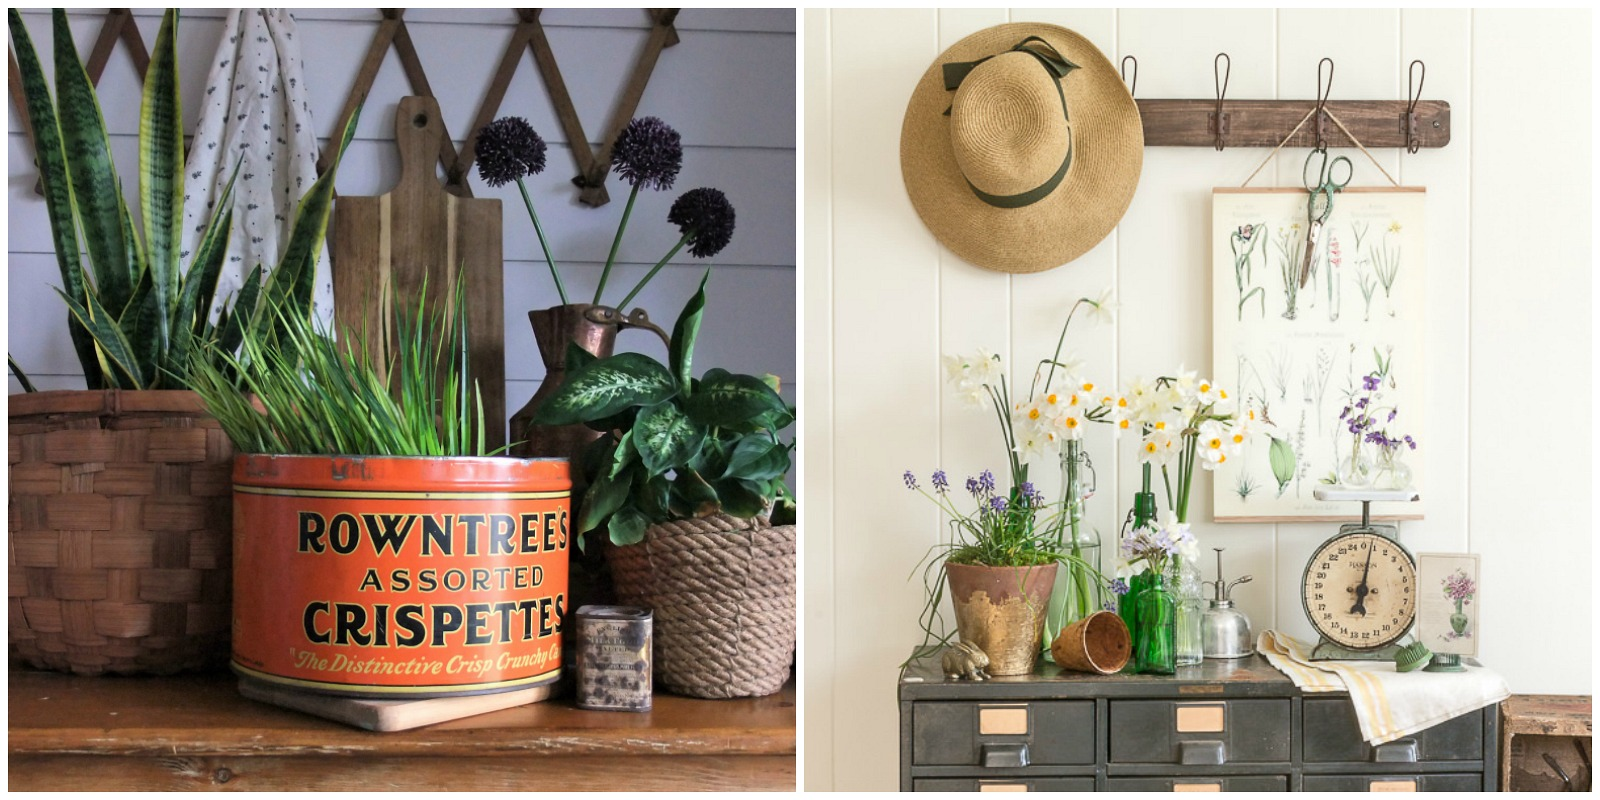 Natural Home Decor and Decor inspired by Vintage Garden by the Creative Vintage Darlings